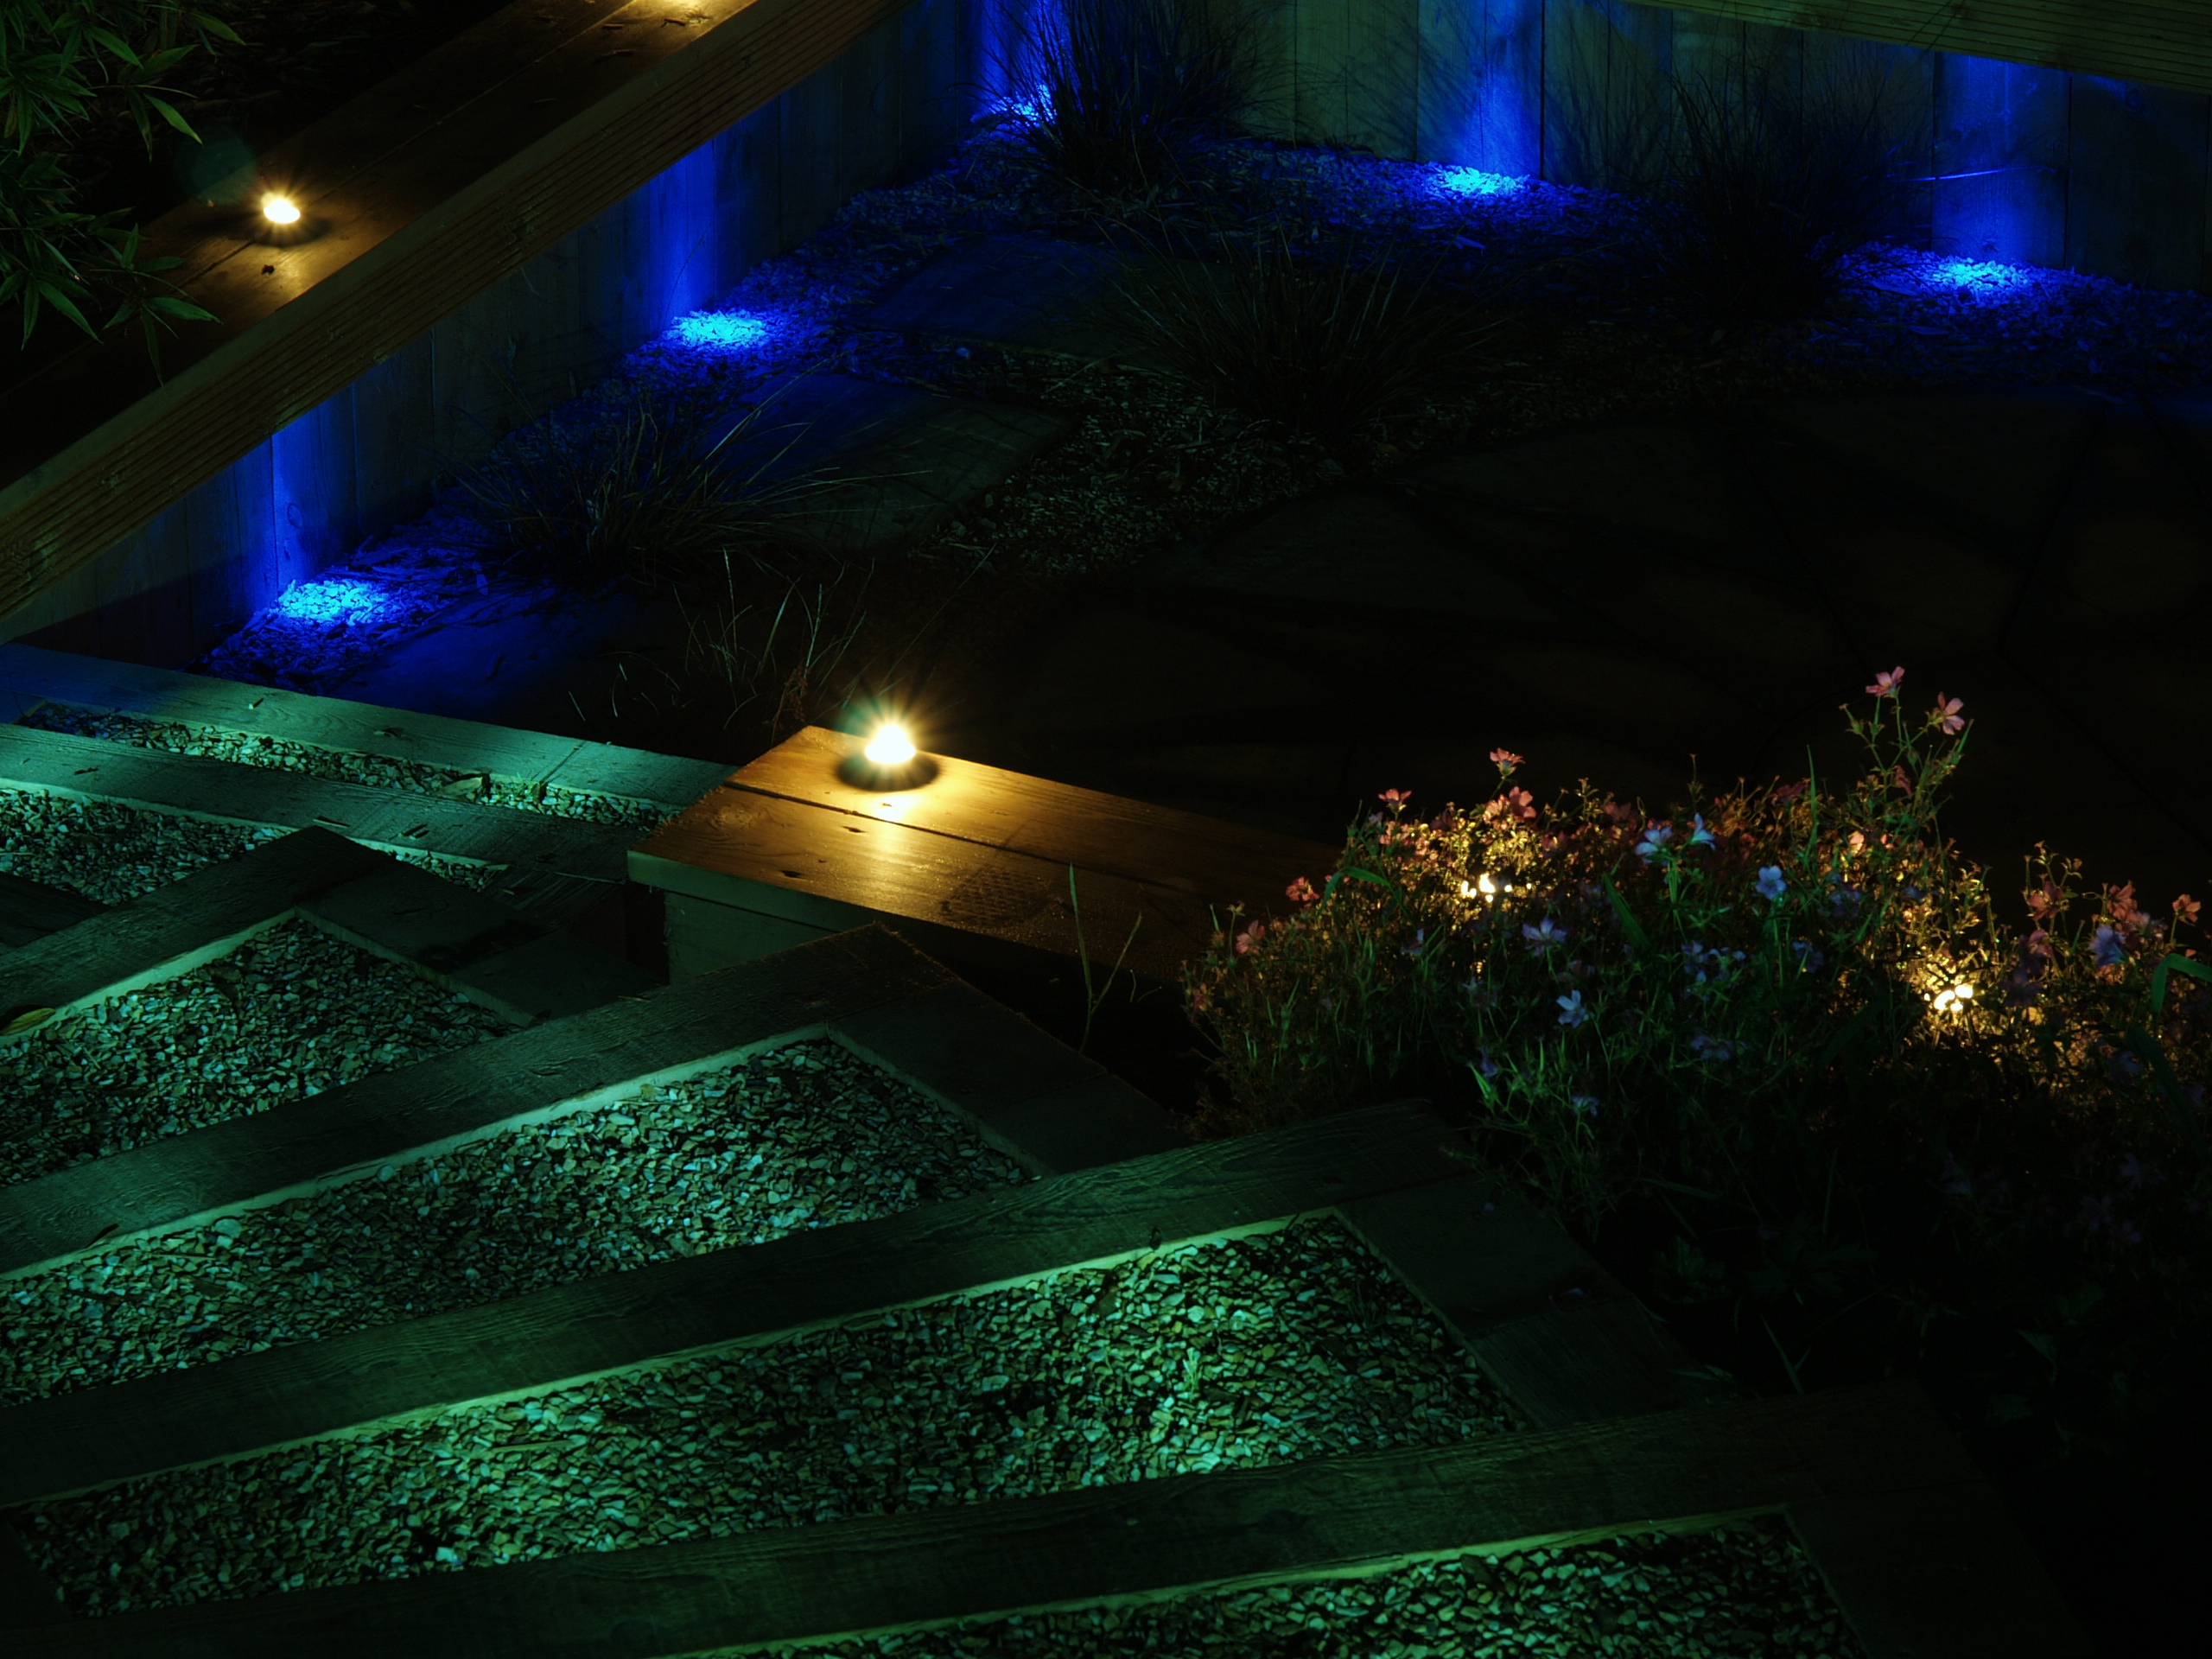 Outdoor Garden Lighting Design Services Shankill, Dublin, Ireland